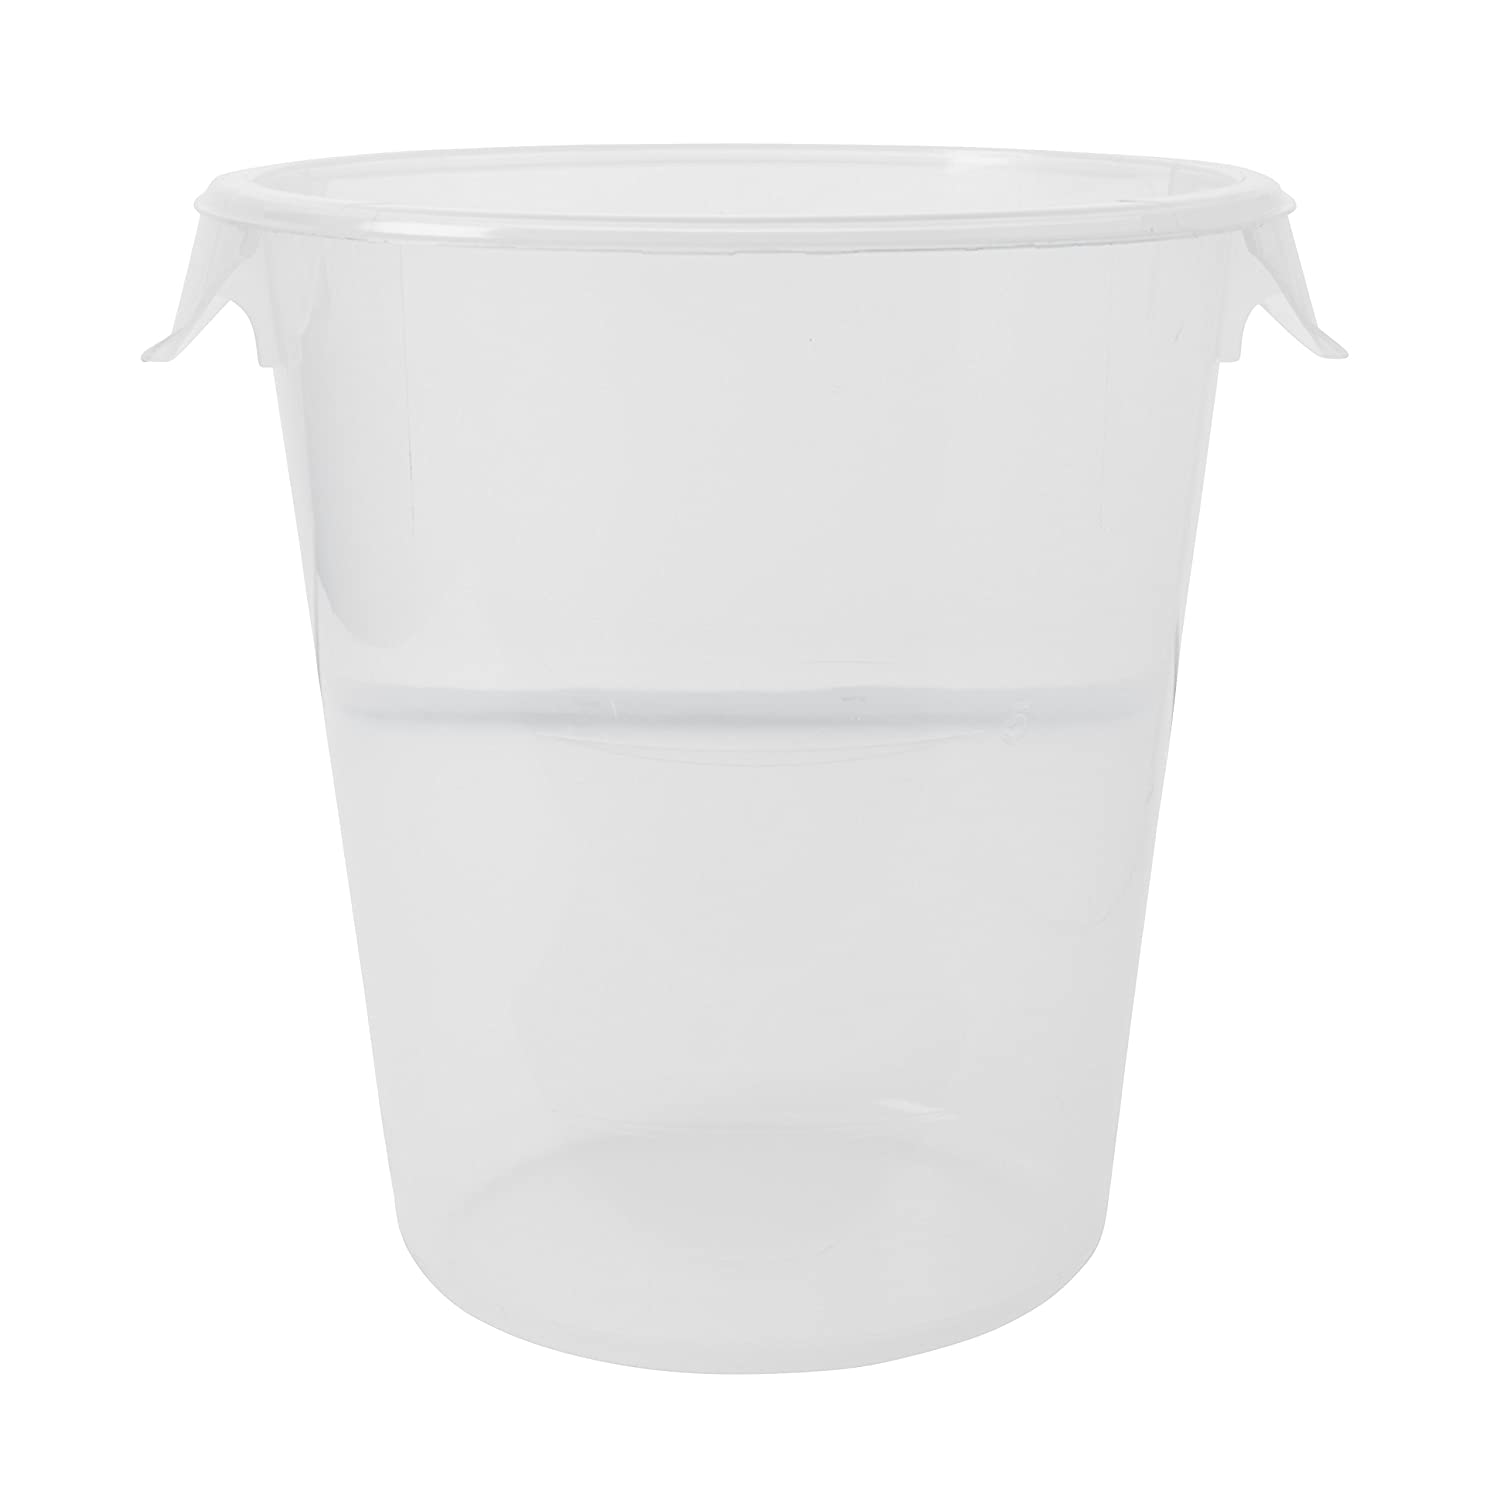 Rubbermaid Commercial Products FG572424CLR 8-Quart Round Storage Container